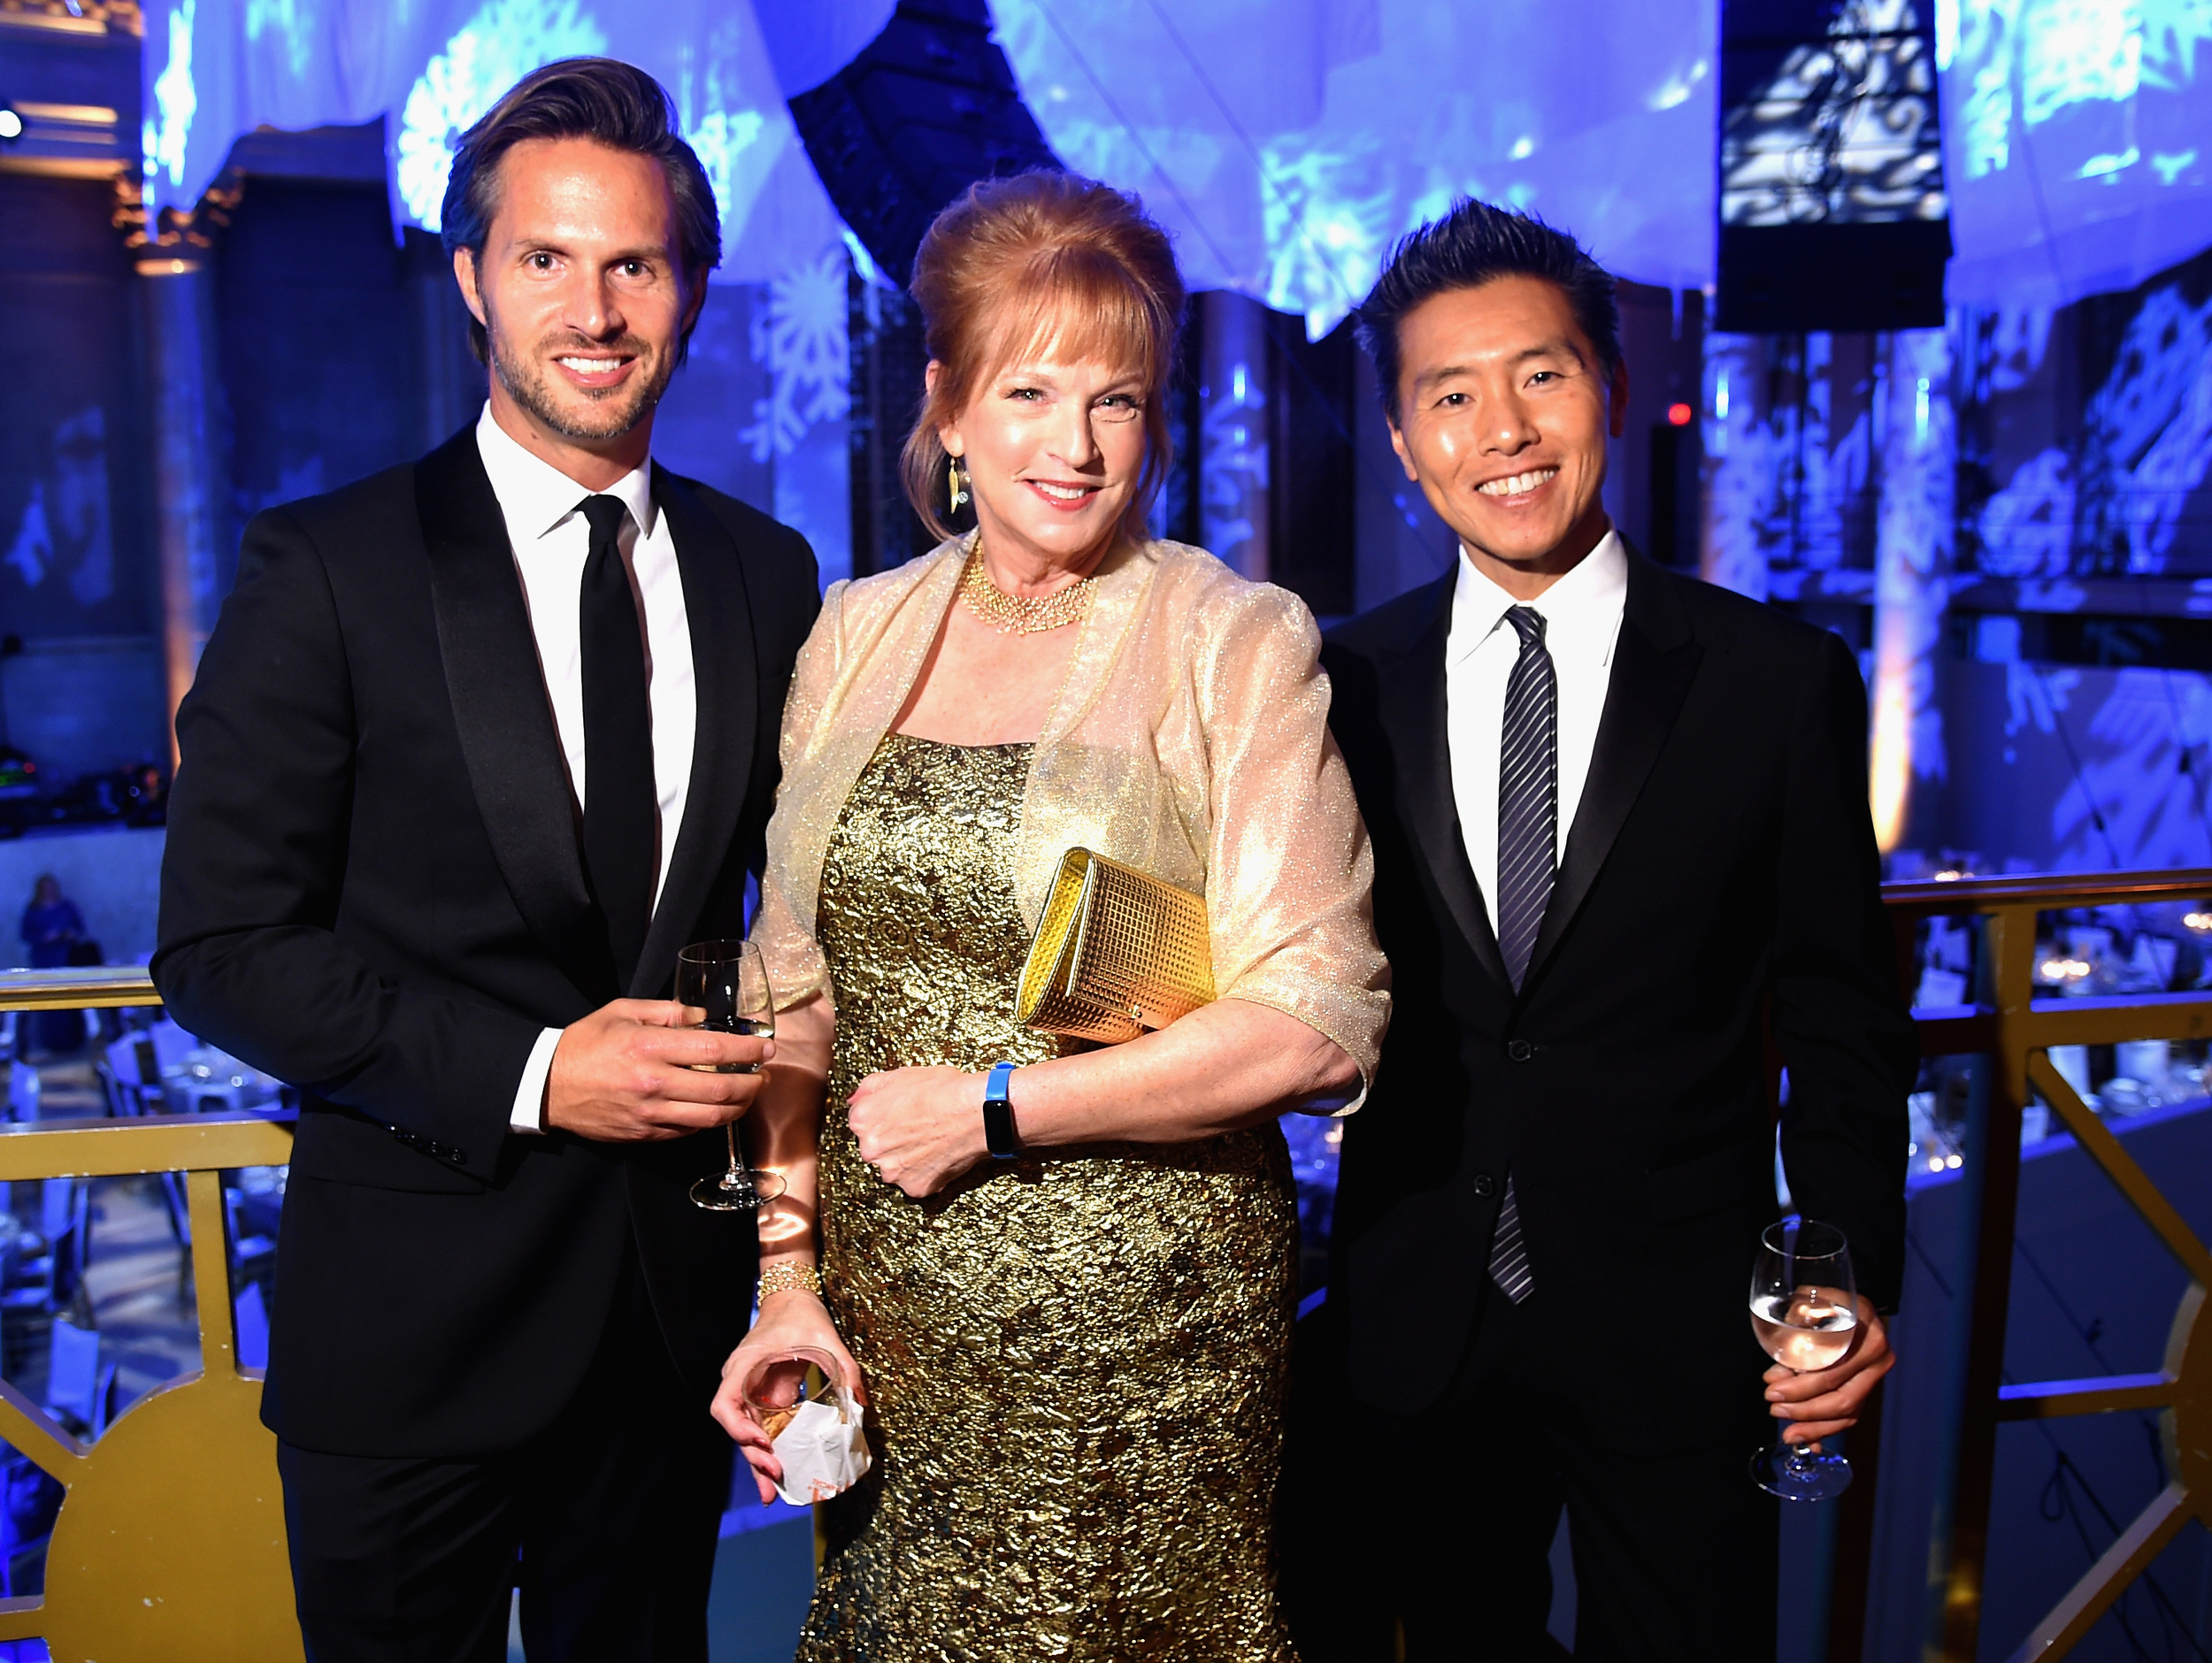 Craig Koch, UNICEF Snowflake Ball Patron Christine Stonbely, and UNICEF Ambassador and UNICEF Snowflake Ball Decor Designer Vern Yip ©2015 Michael Loccisano/Getty Images for UNICEF